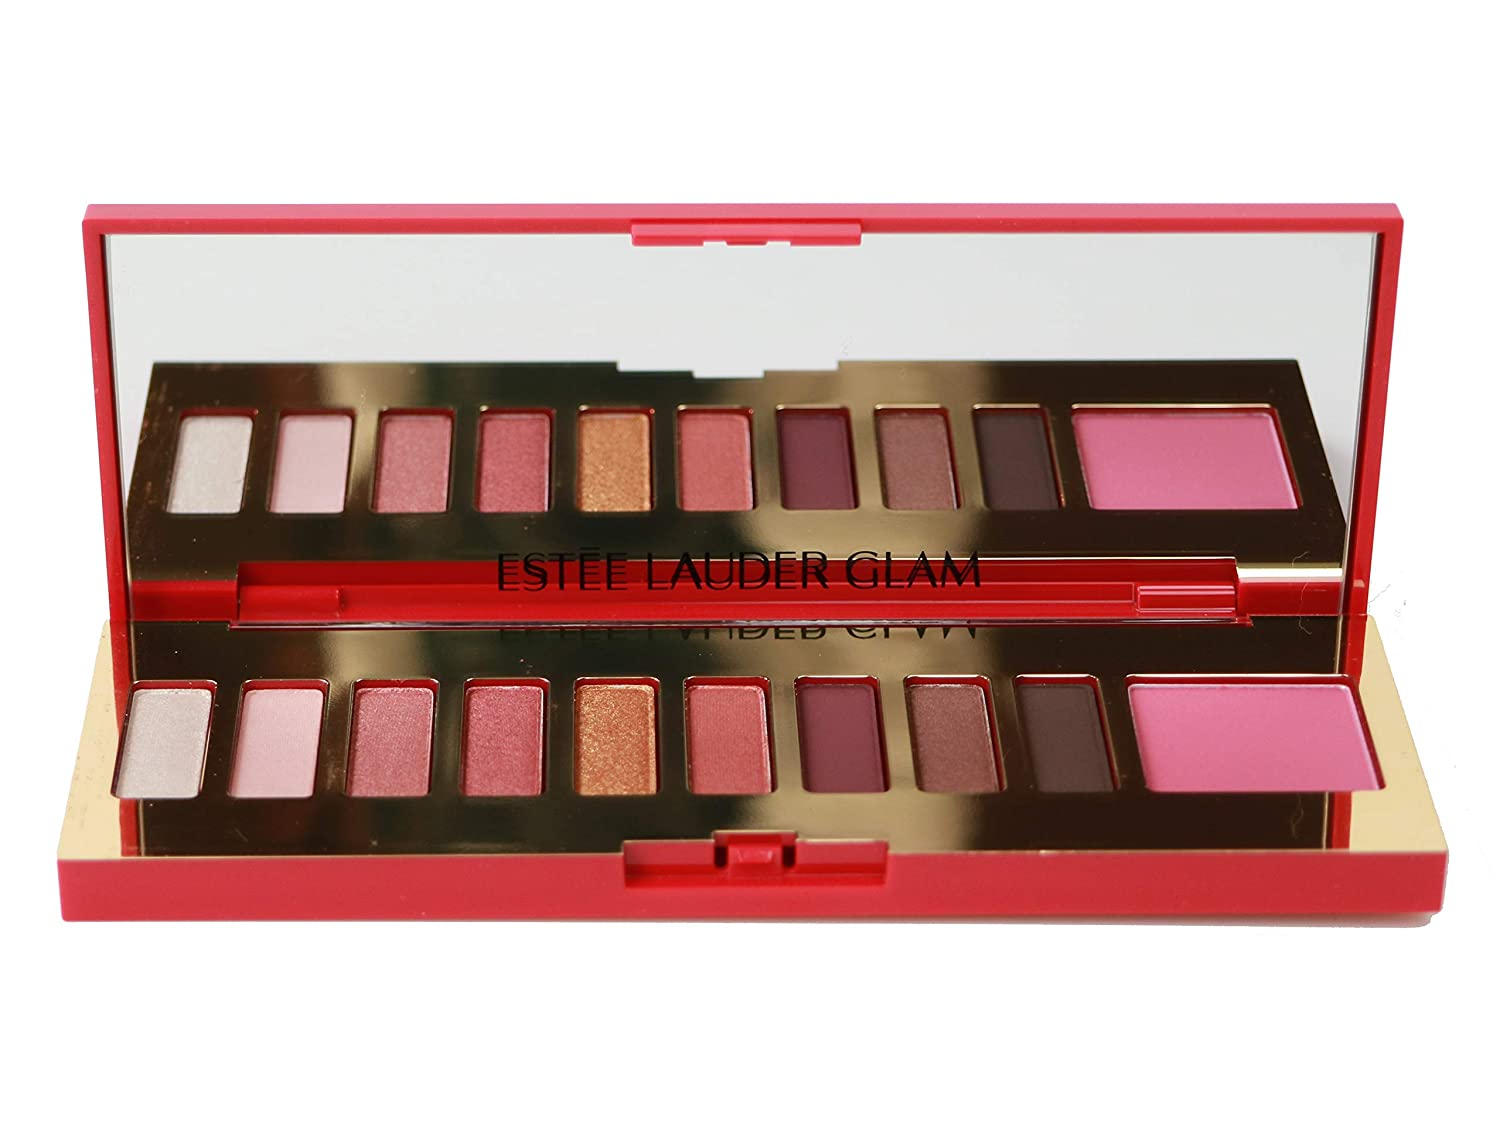 Estee Lauder Pure Color Envy Eye and Cheek Palette - Glam, Eyeshadow(9) and Blush, Unboxed Limited Edition